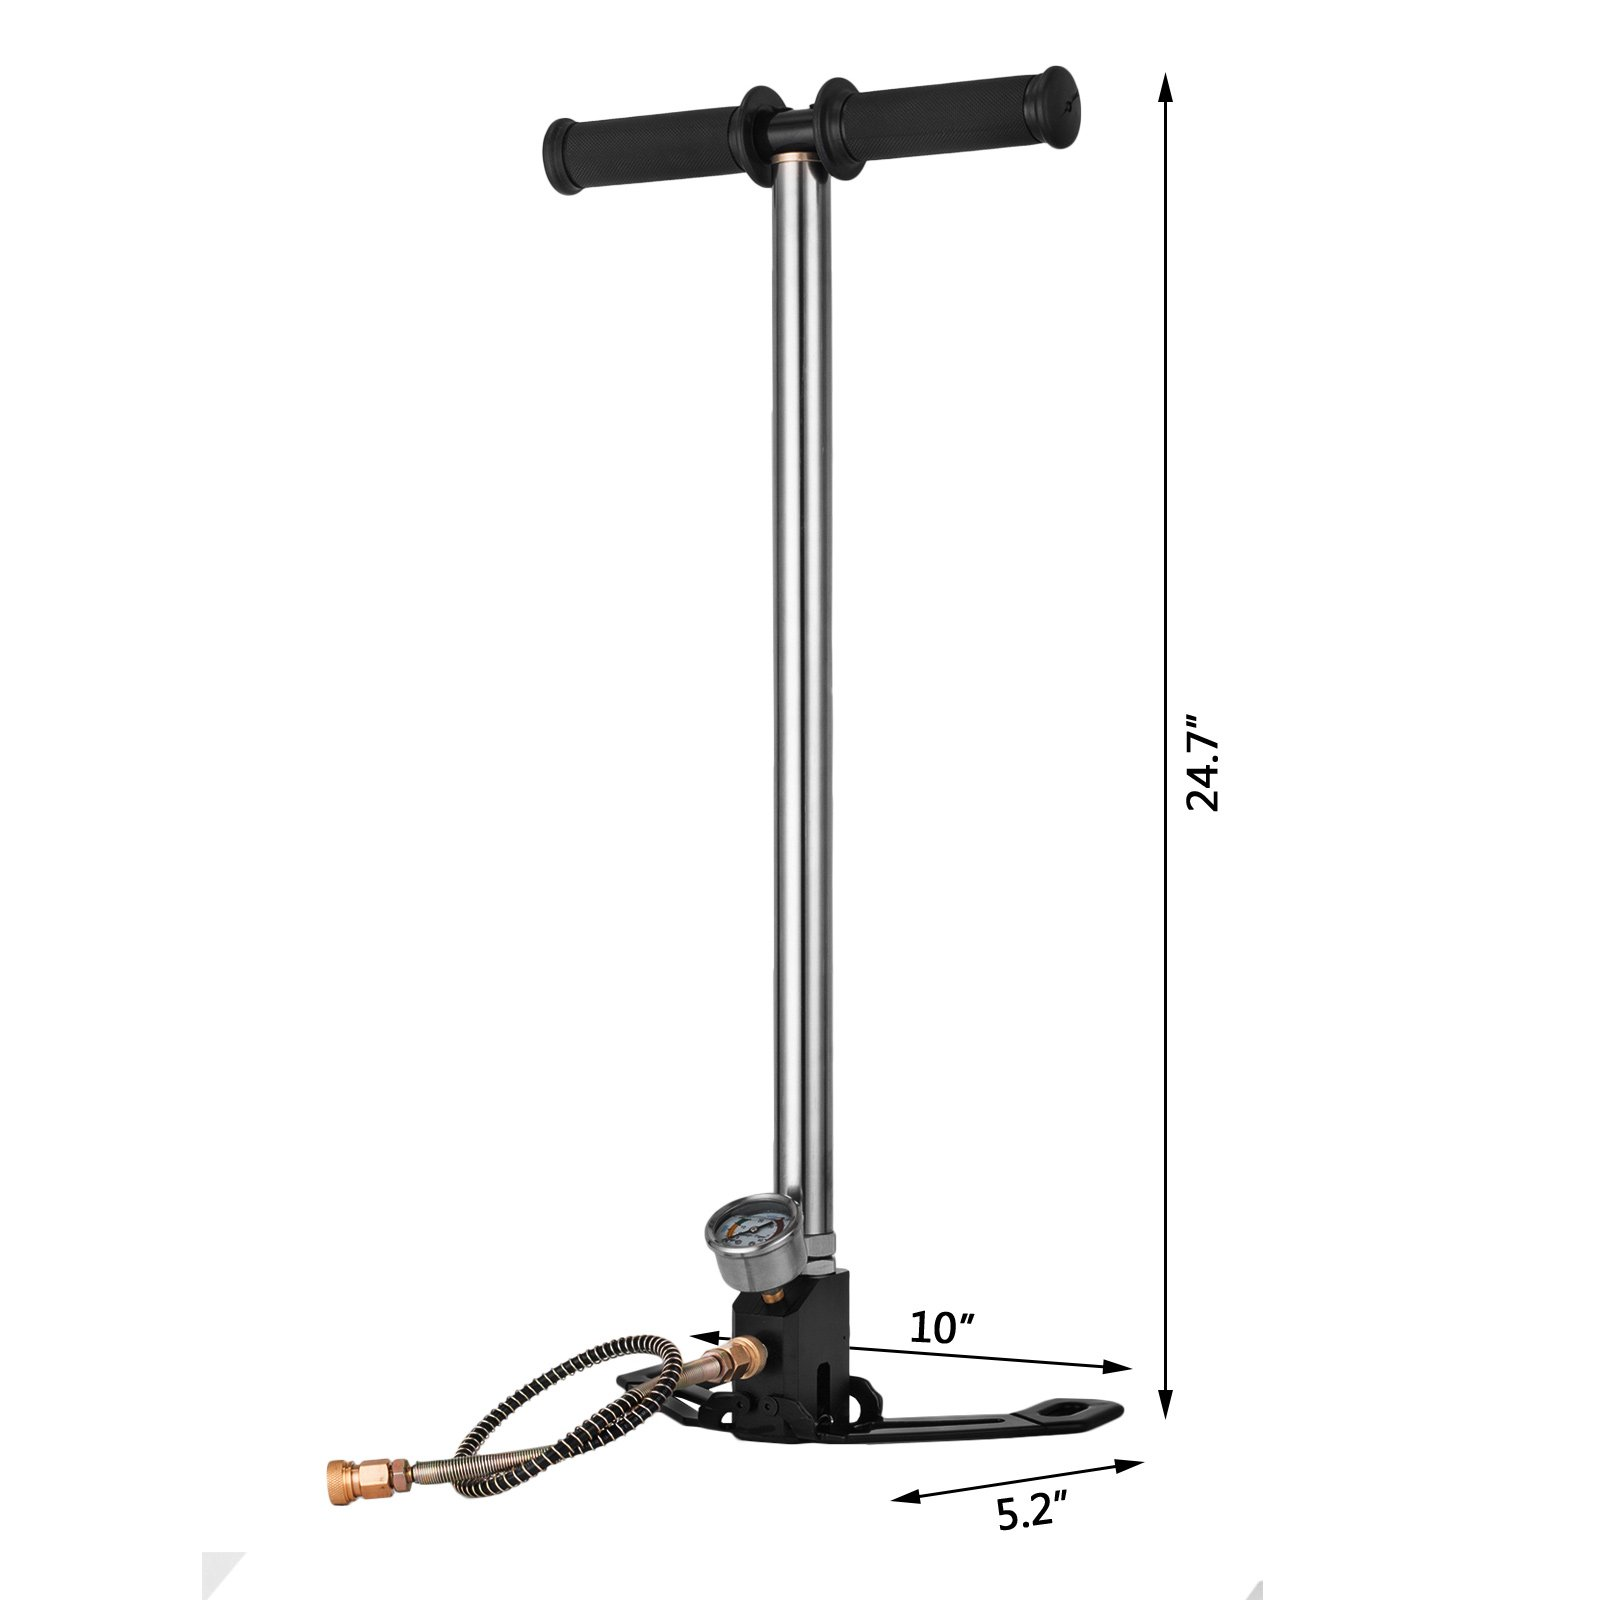 Mophorn High Pressure Hand Pump 3 Stage up to 4500 psi PCP Pump Safe and Convenient Airgun PCP Pump High Pressure Hand Pump for High Pressure Tires and Pre-Charged Pneumatic Airguns